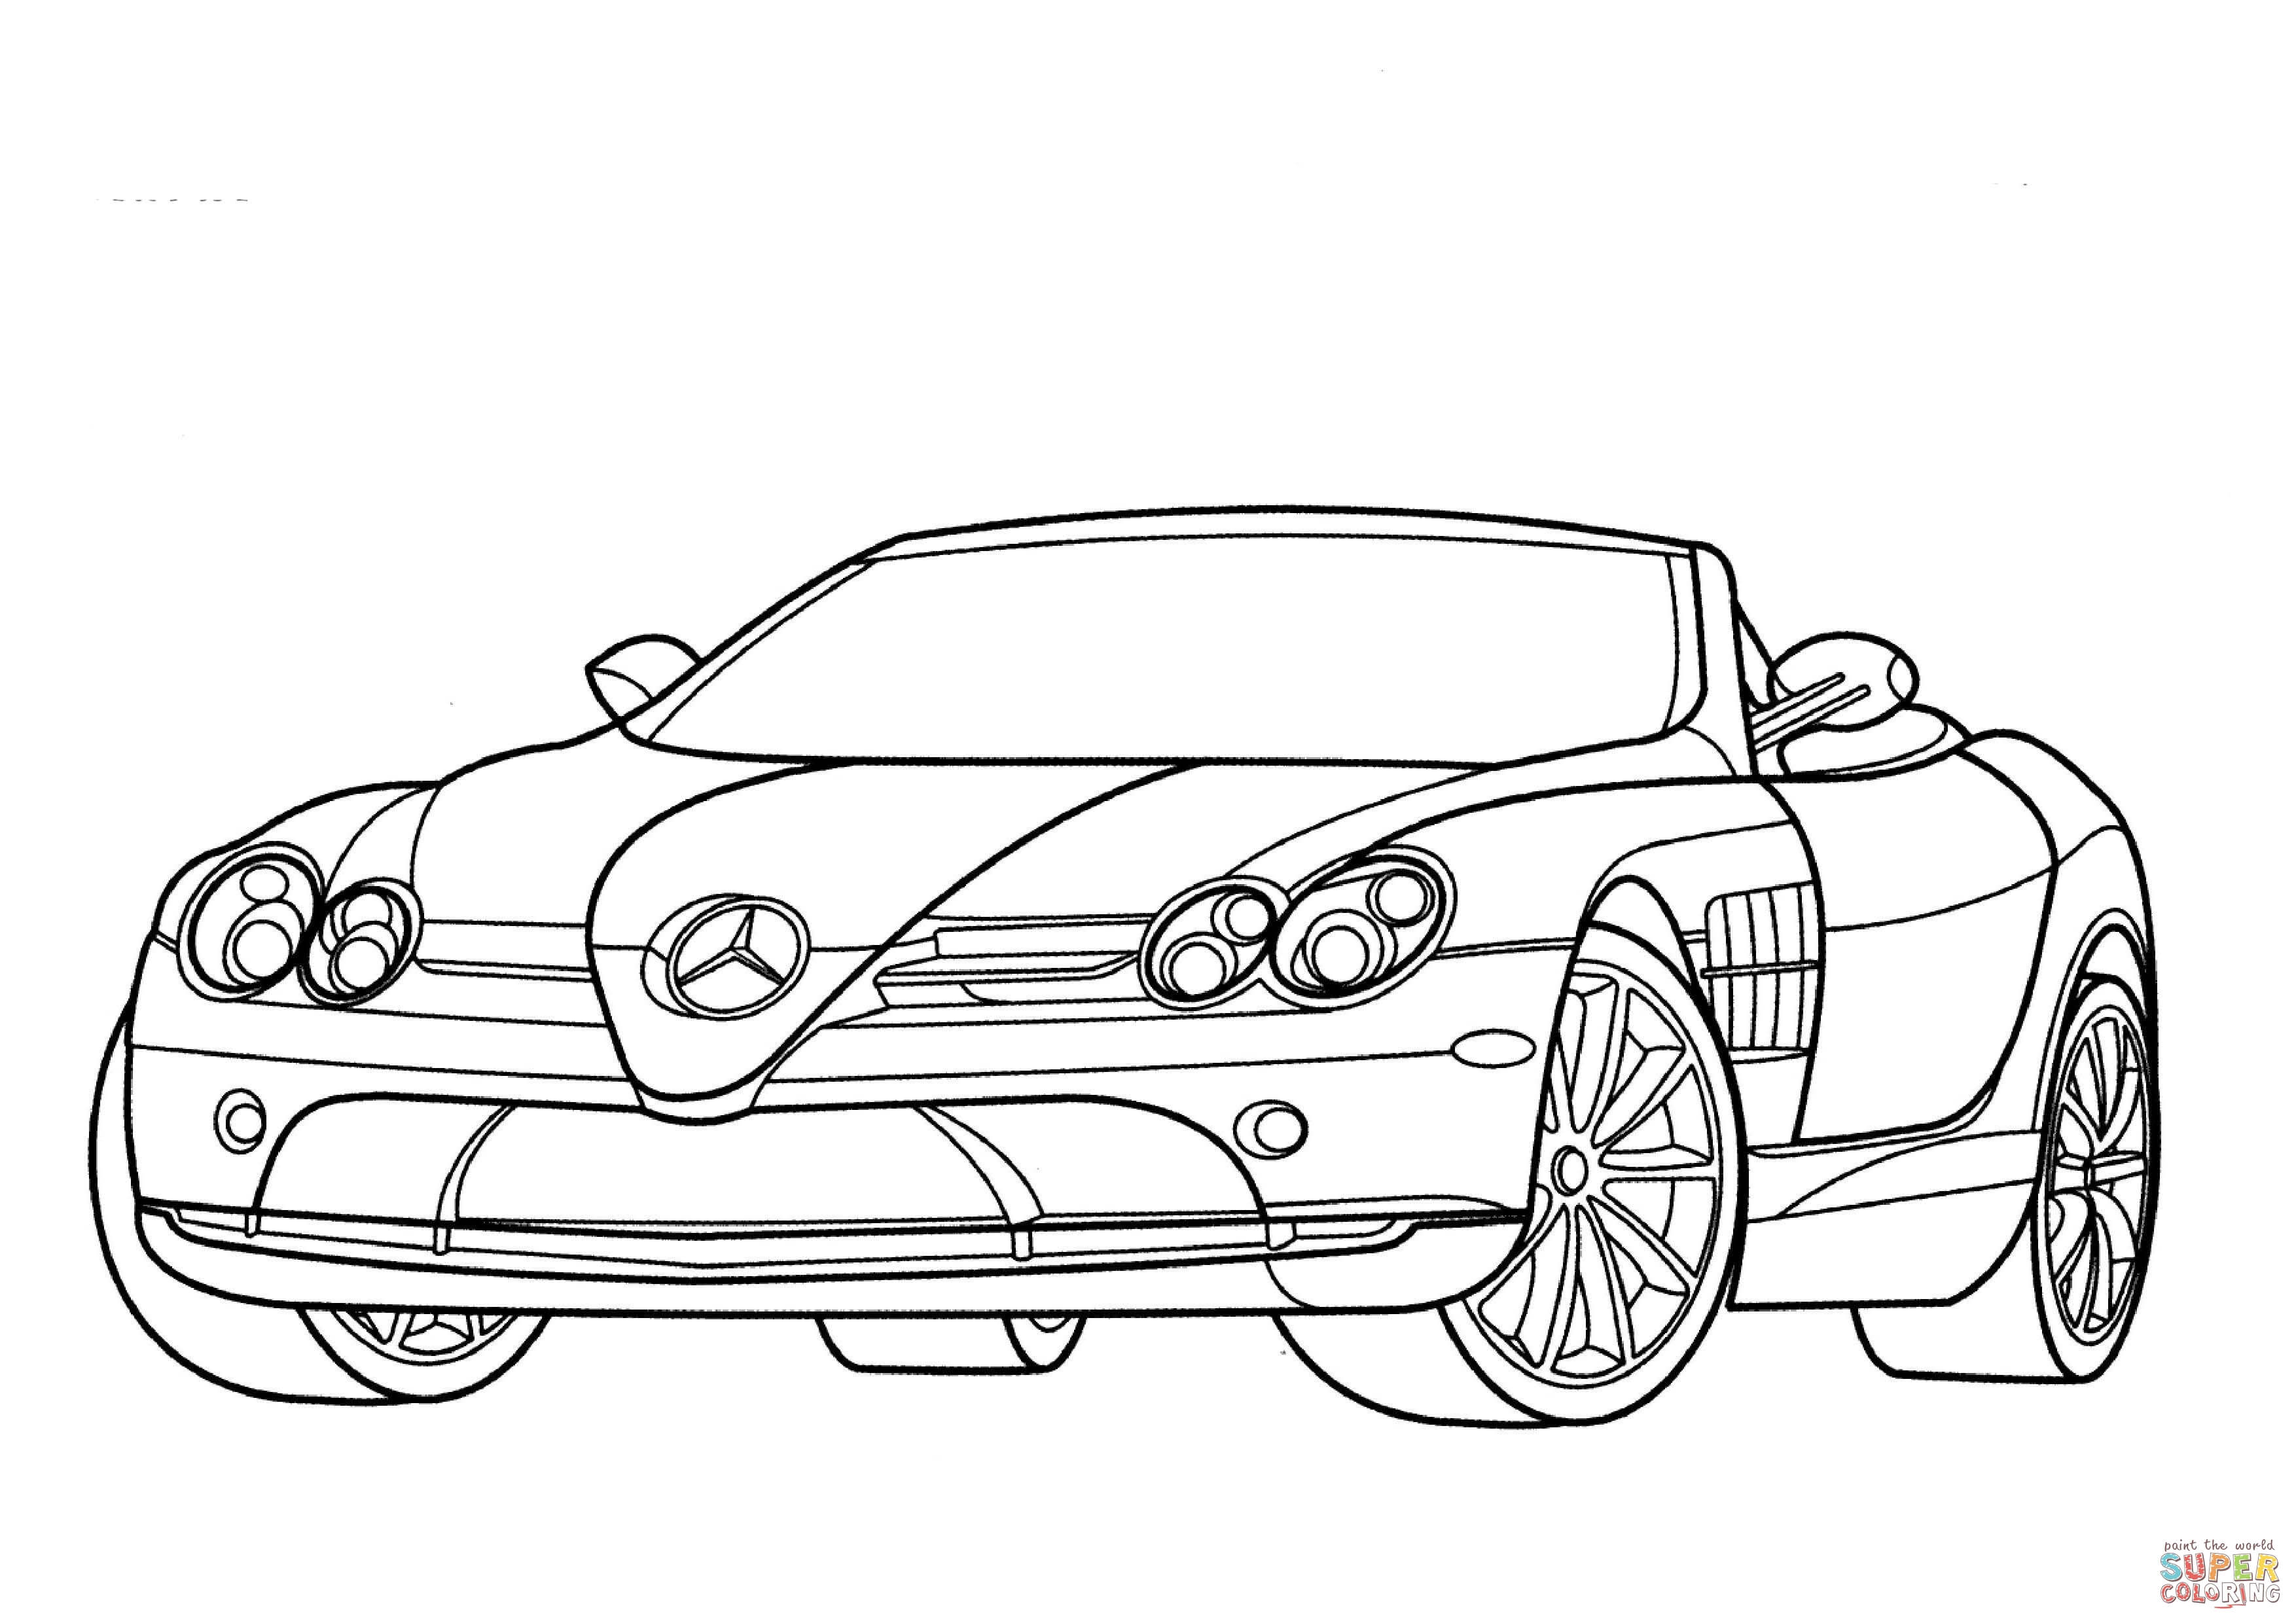 mercedes coloring sheet mercedes benz s class coloring page free printable sketch coloring mercedes sheet